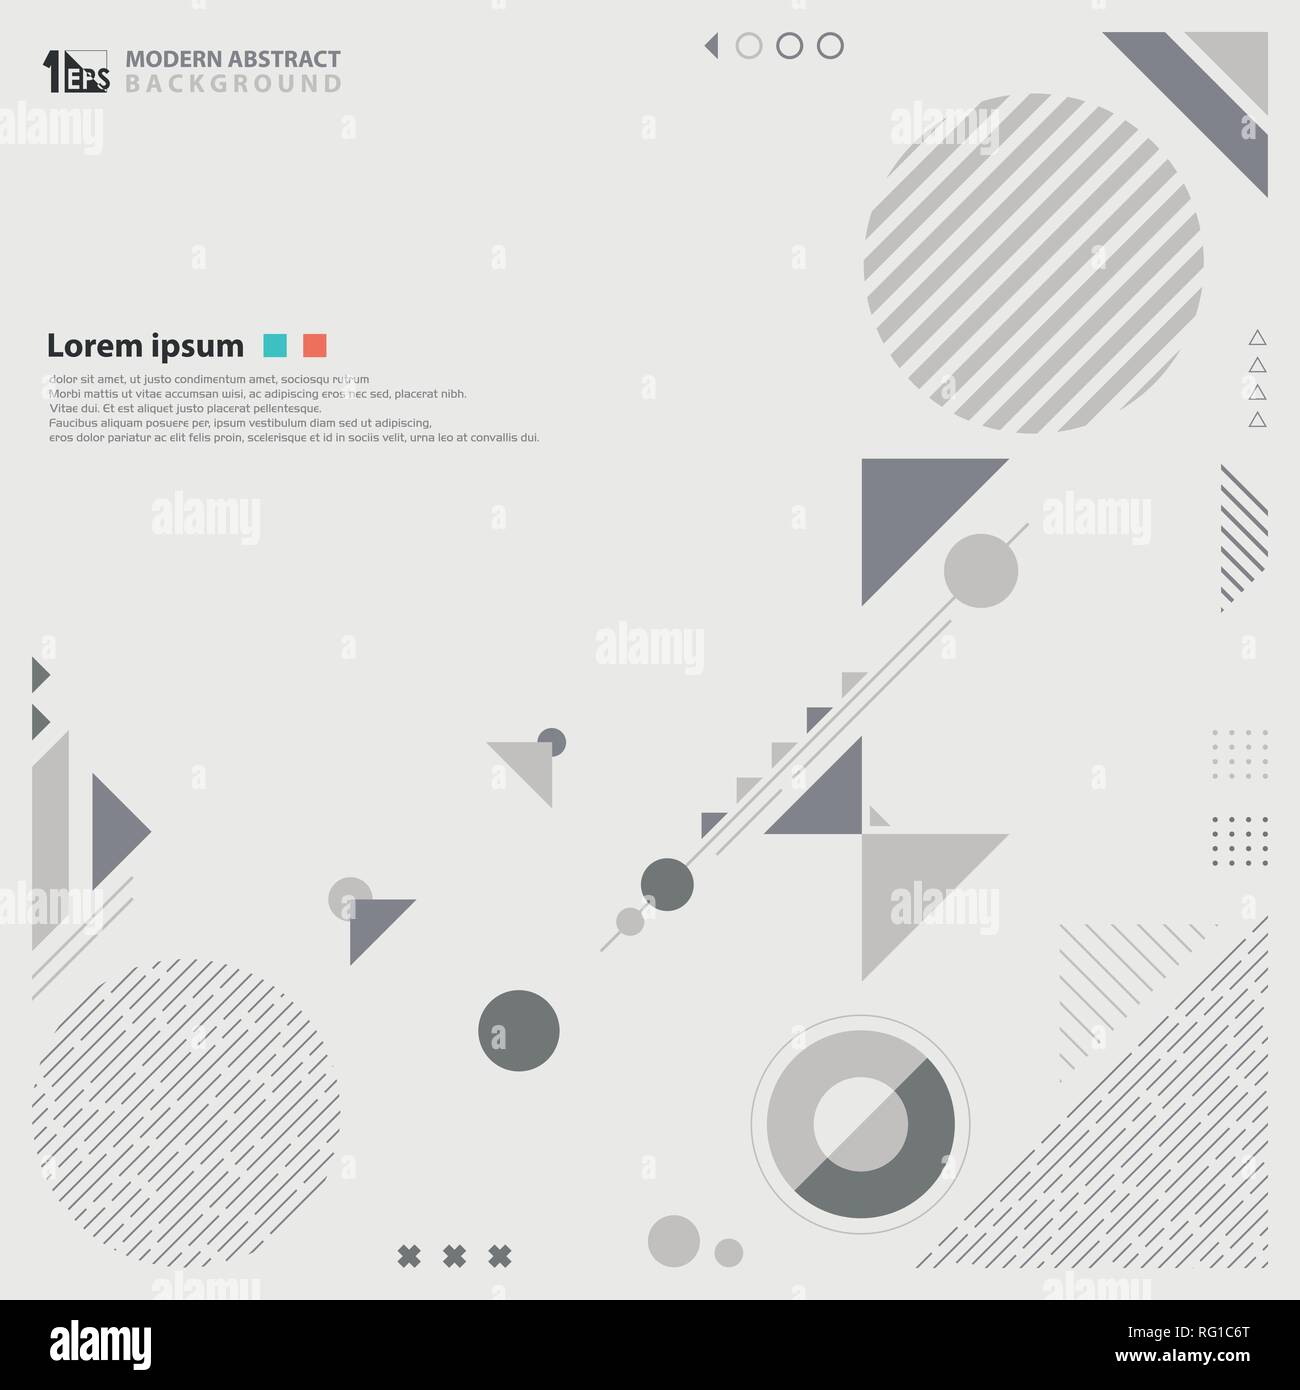 Abstract modern design gray color tone of geometric composition background. Pattern design of circle and triangles shape using for advertise work, cov - Stock Image